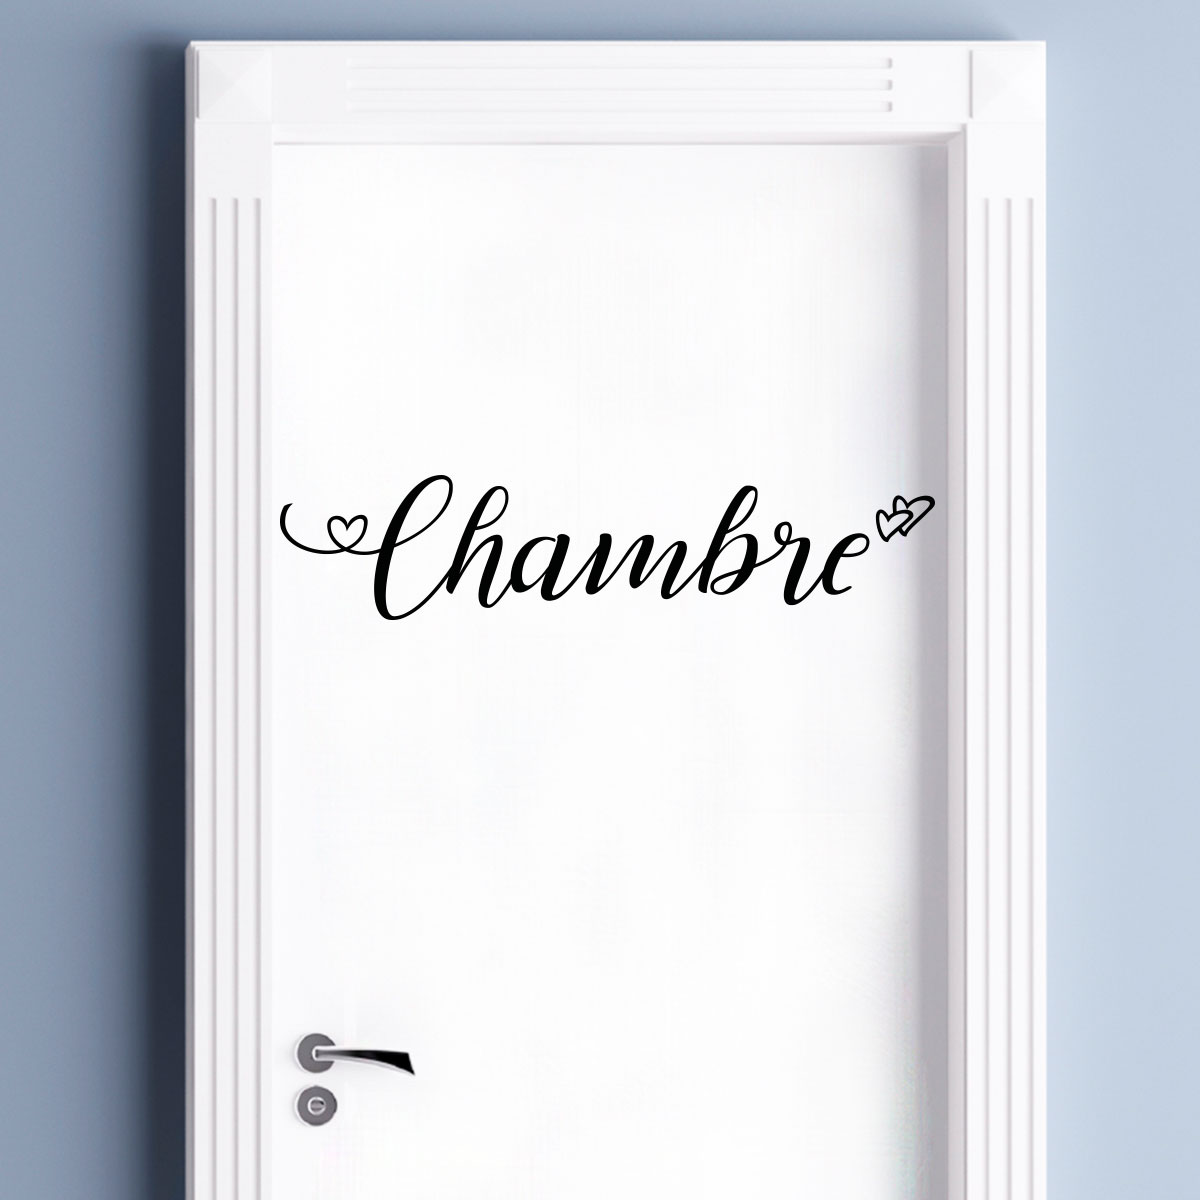 Stickers Deco Chambre Sticker Porte Chambre Amoureuse Stickers Fêtes Stickers